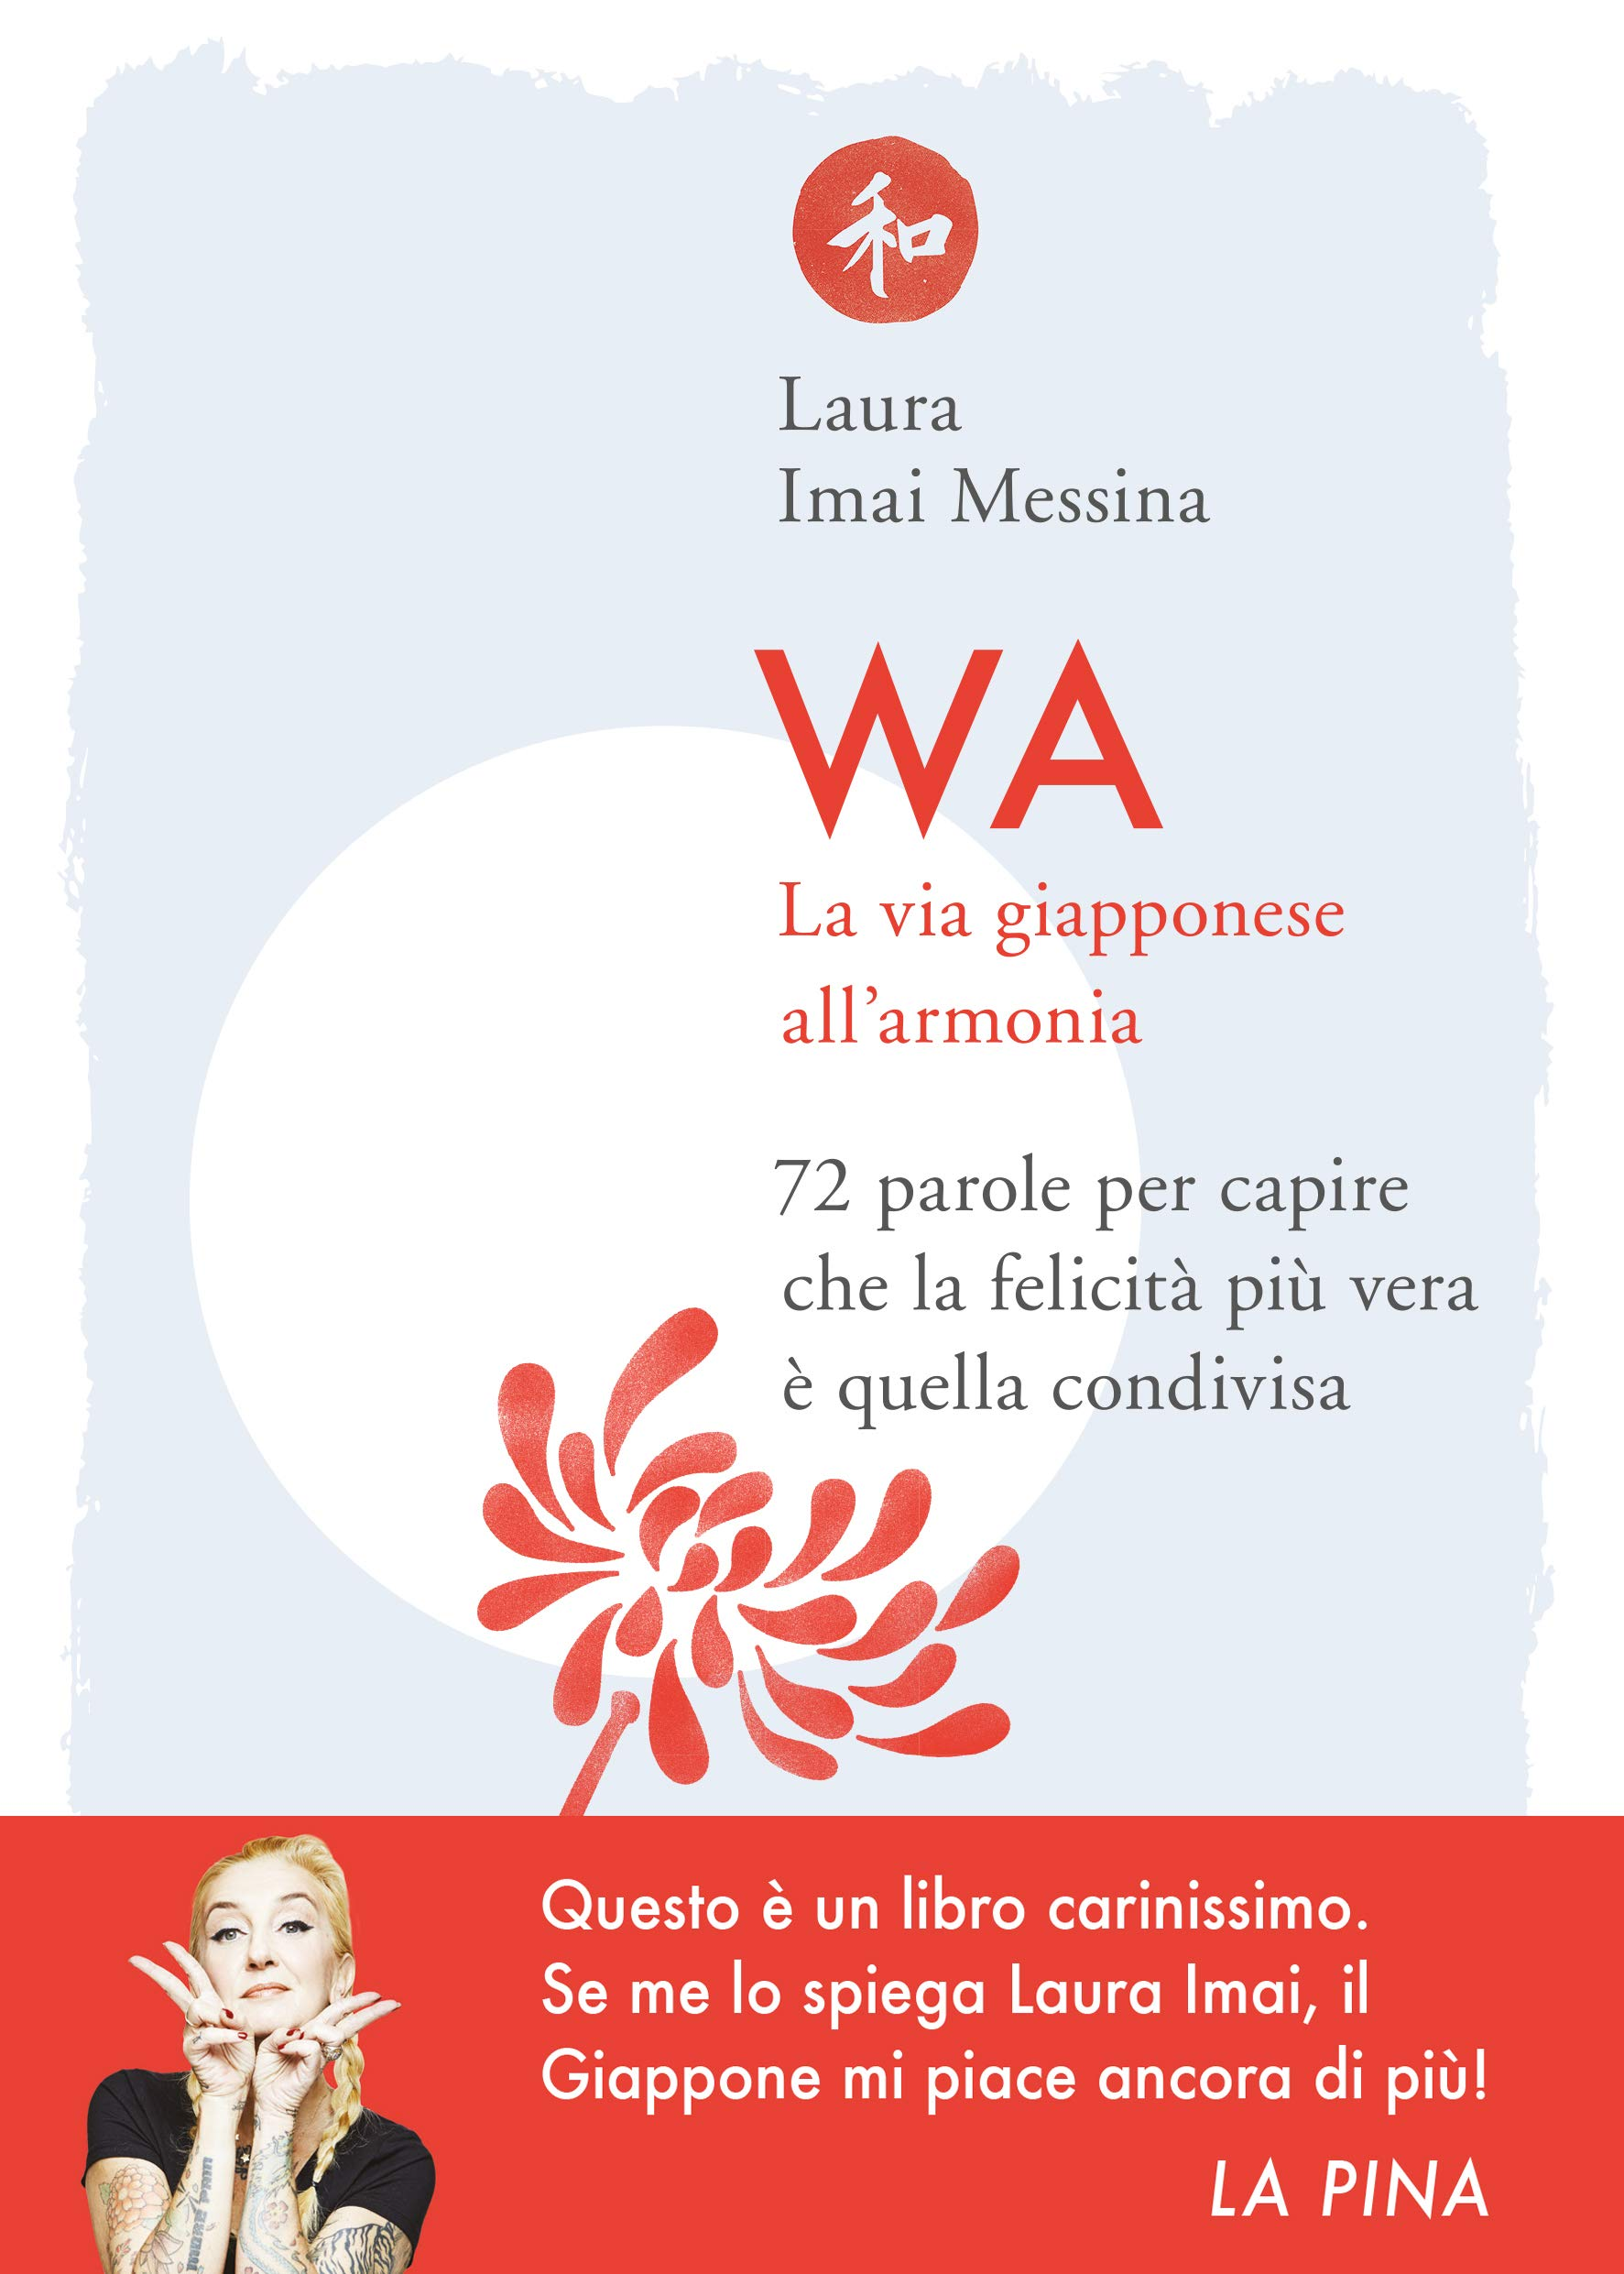 La copertina del Wa - La via giapponese all'armonia di Laura Imai Messina